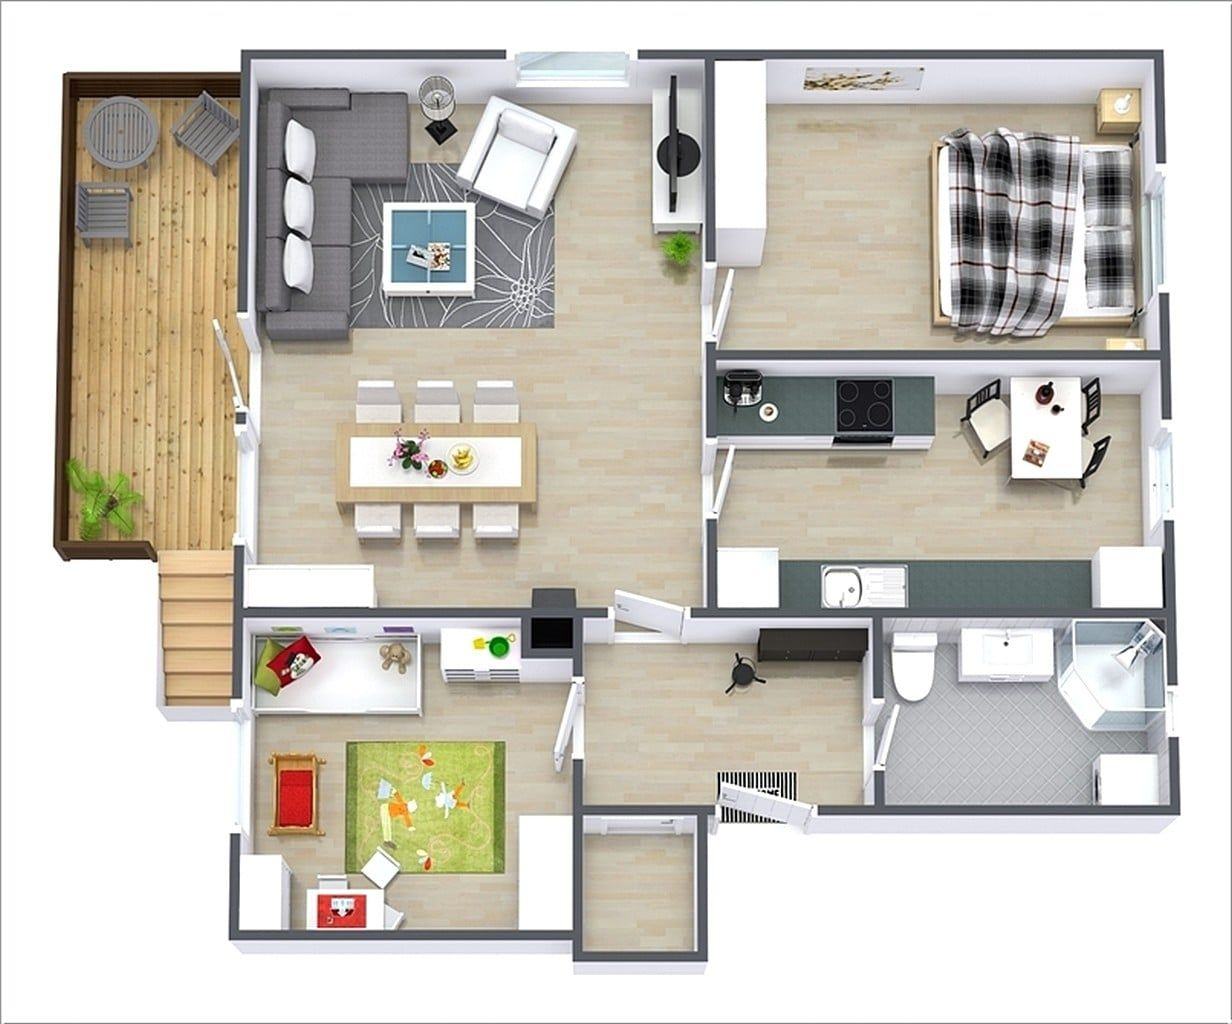 35 Awesome Apartment 3d Floor Plan Ideas Engineering Discoveries In 2021 Best Interior Design Websites Home Design Software Cool Apartments